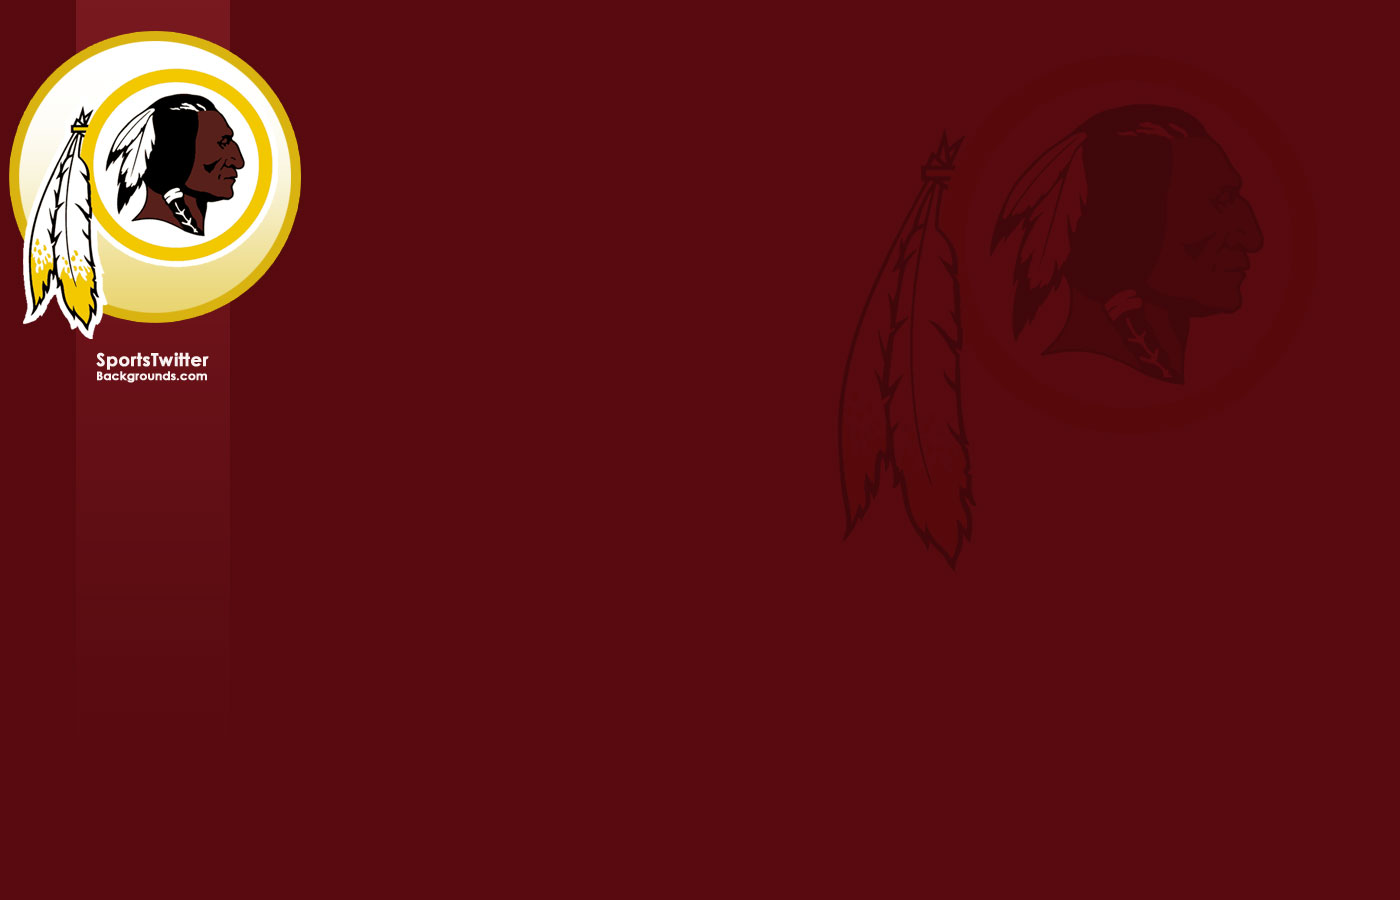 Free Download Nfl Backgrounds Redskins Wallpaper Wallpaper Hd